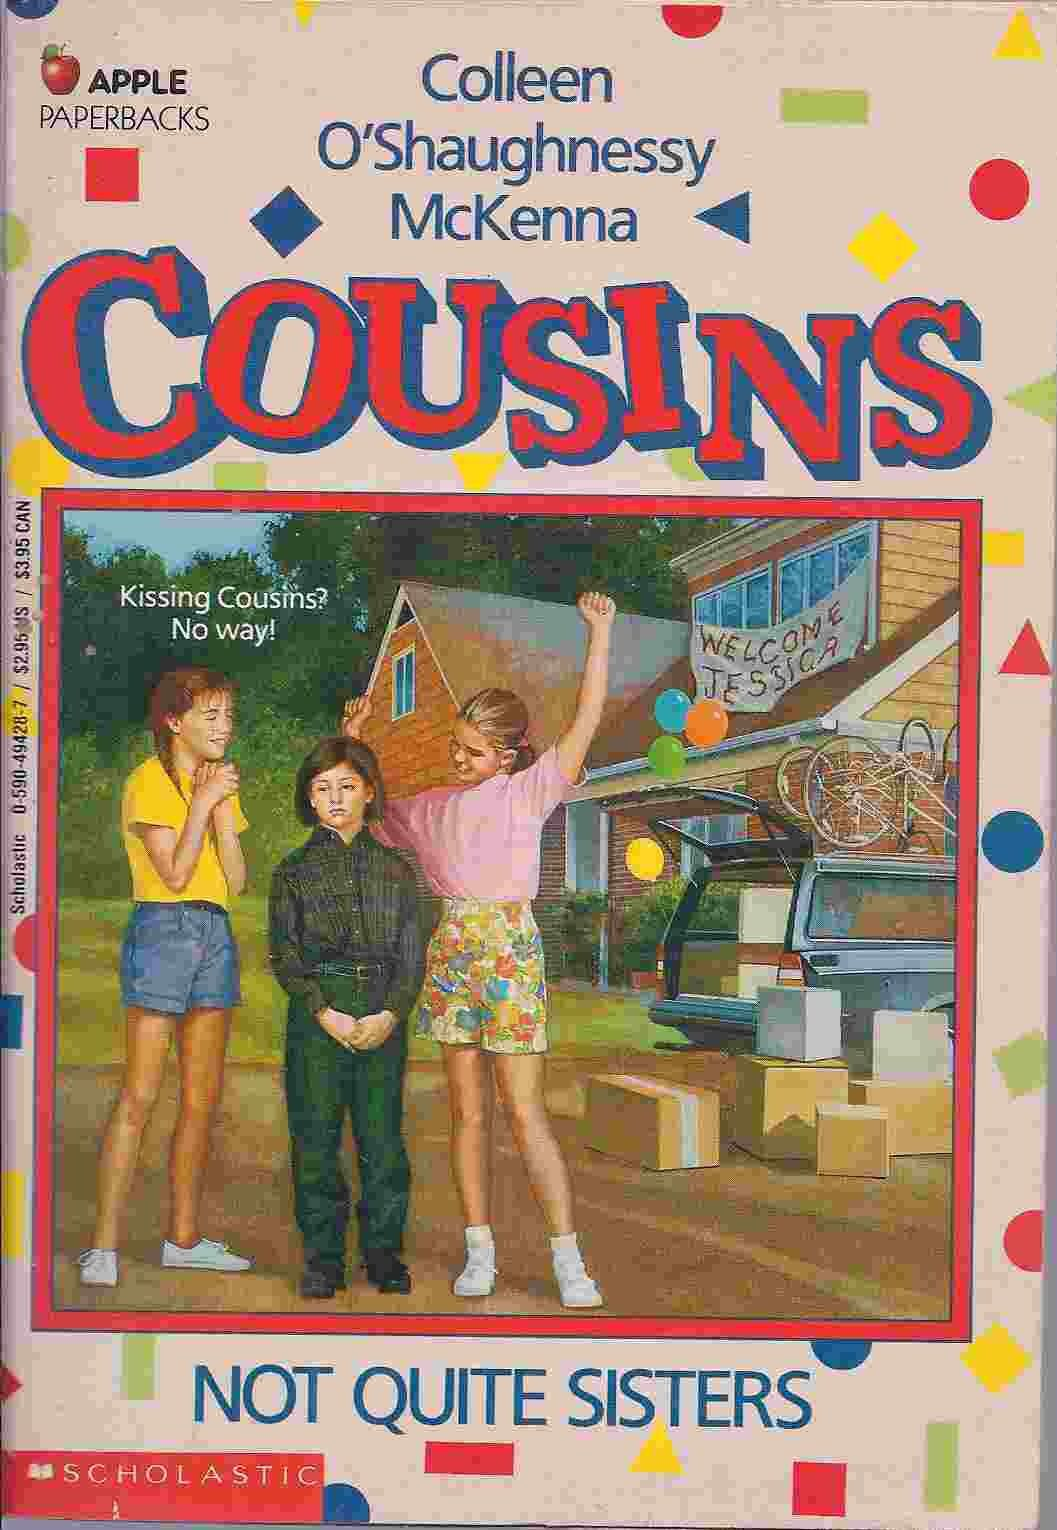 Image of the book cover for Cousins: Not Quite Sisters